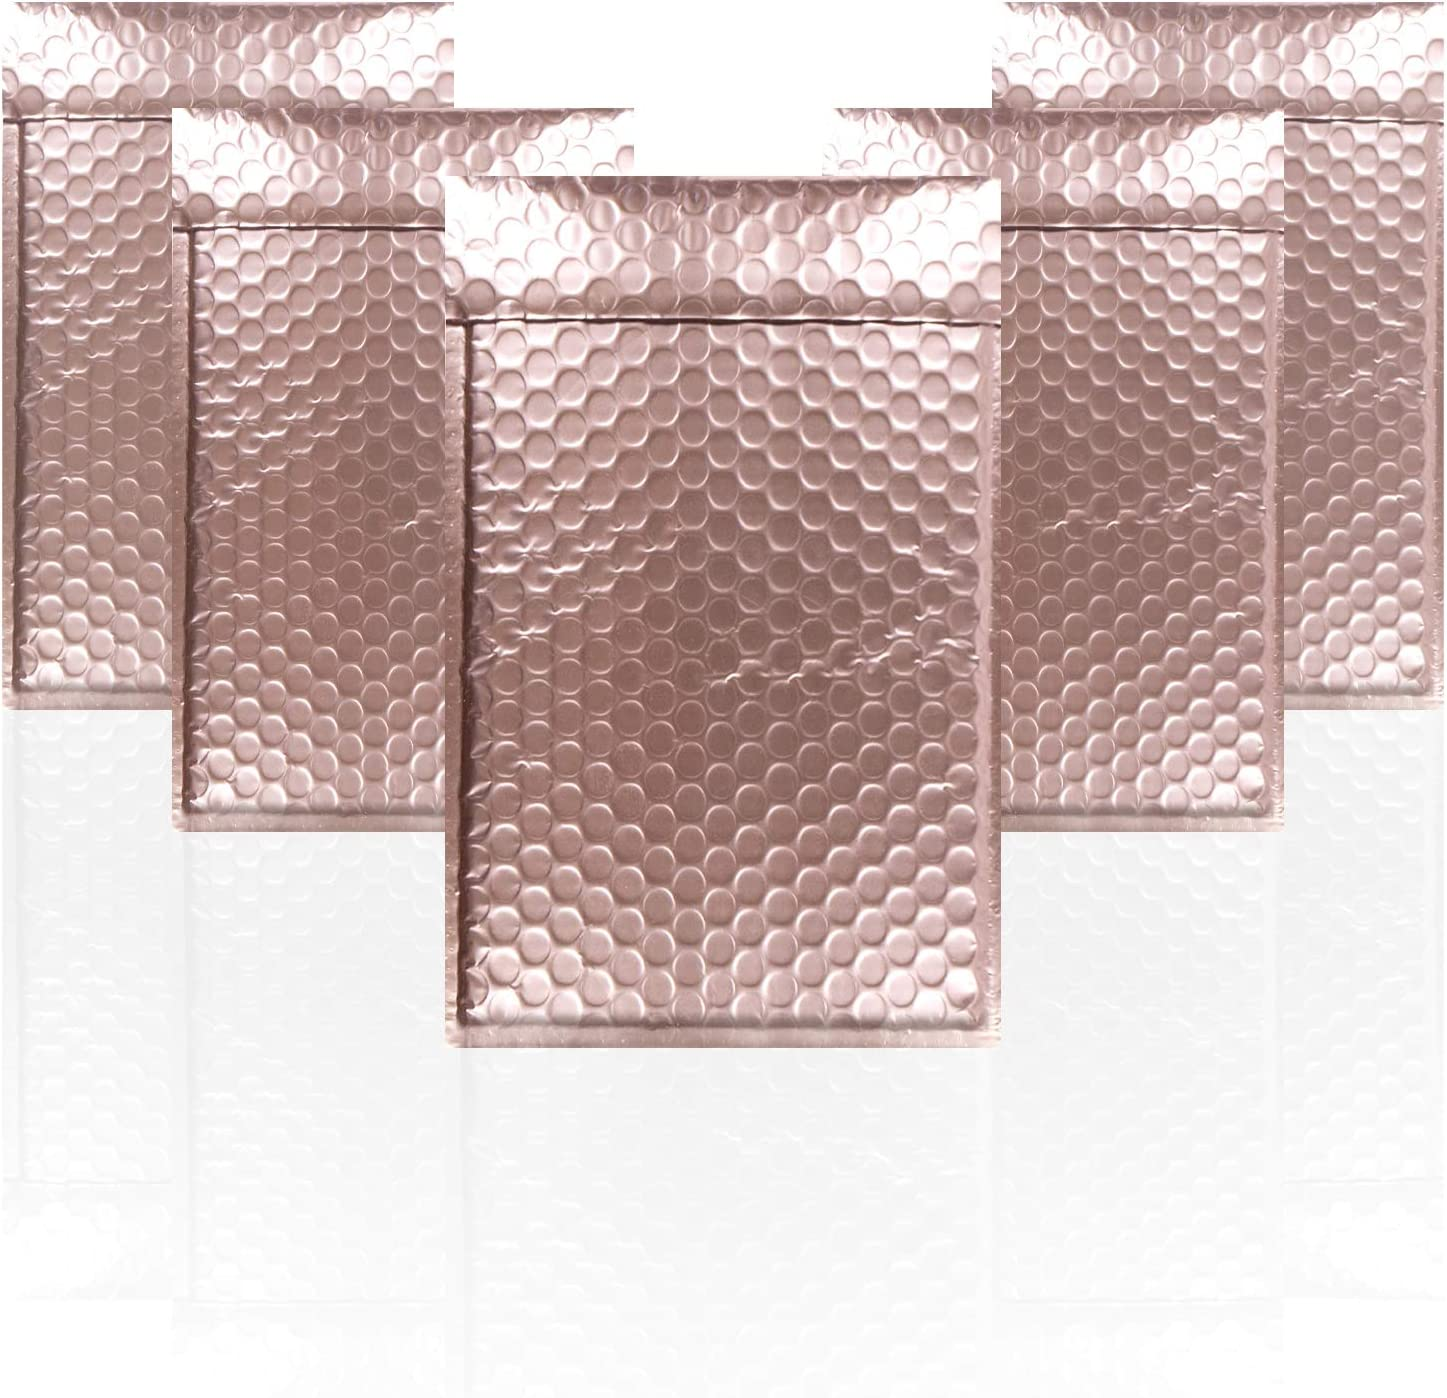 AMZ Bubble Mailers 5 x 9 Pack of 25 Rose Gold Padded Envelopes 5x9 Self-adhesive Closure Metallic Shipping Bags for Mailing Packaging